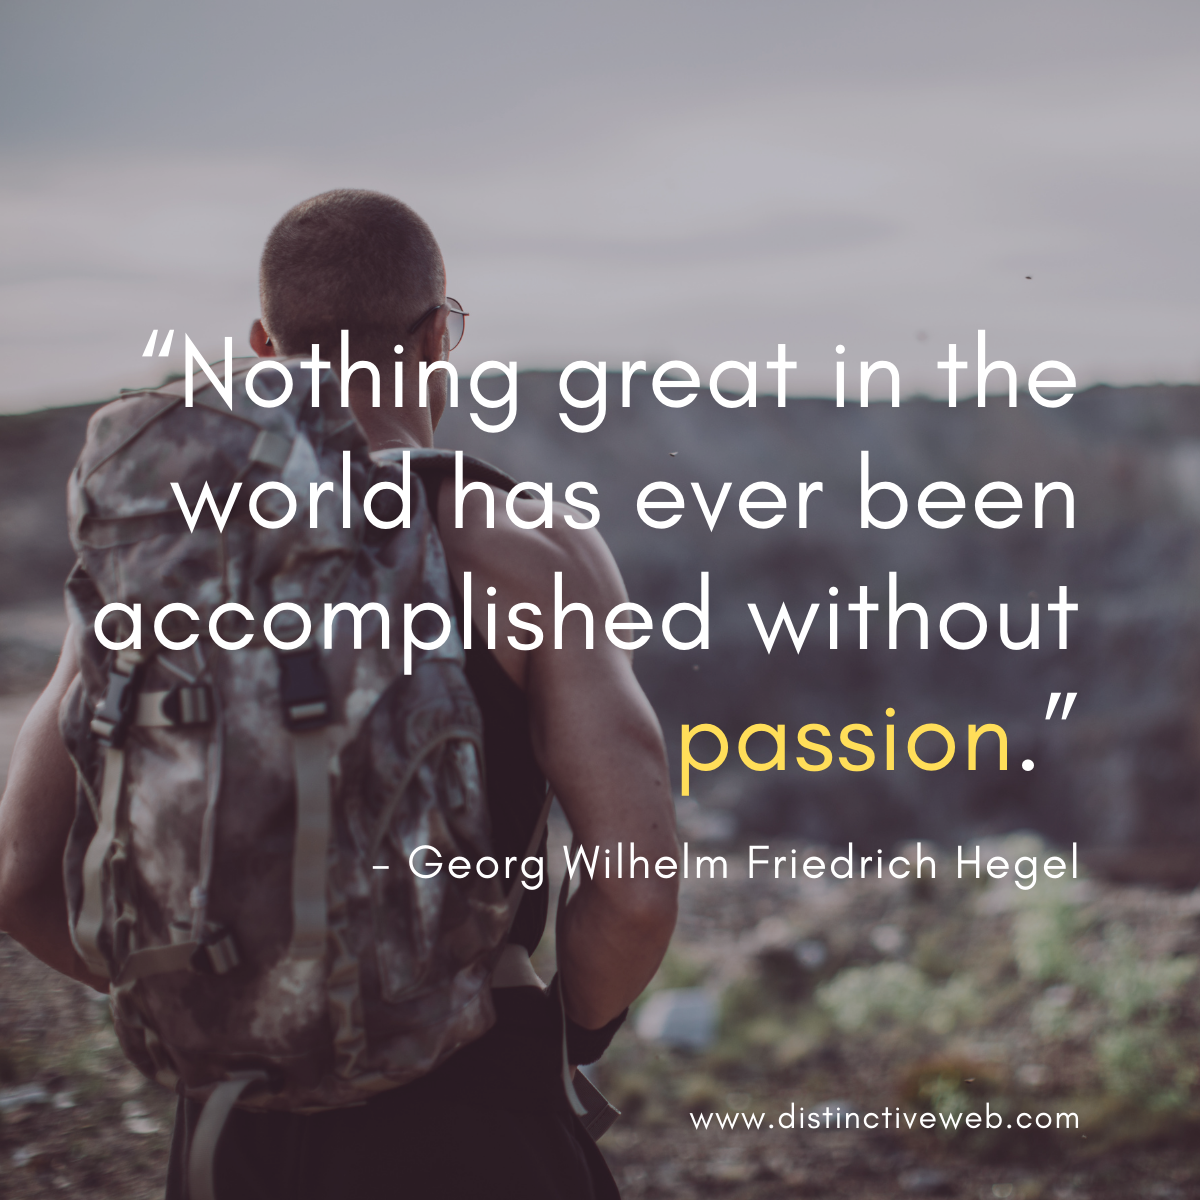 """""""Nothing great in the world has ever been accomplished without passion."""" - Georg Wilhelm Friedrich Hegel"""